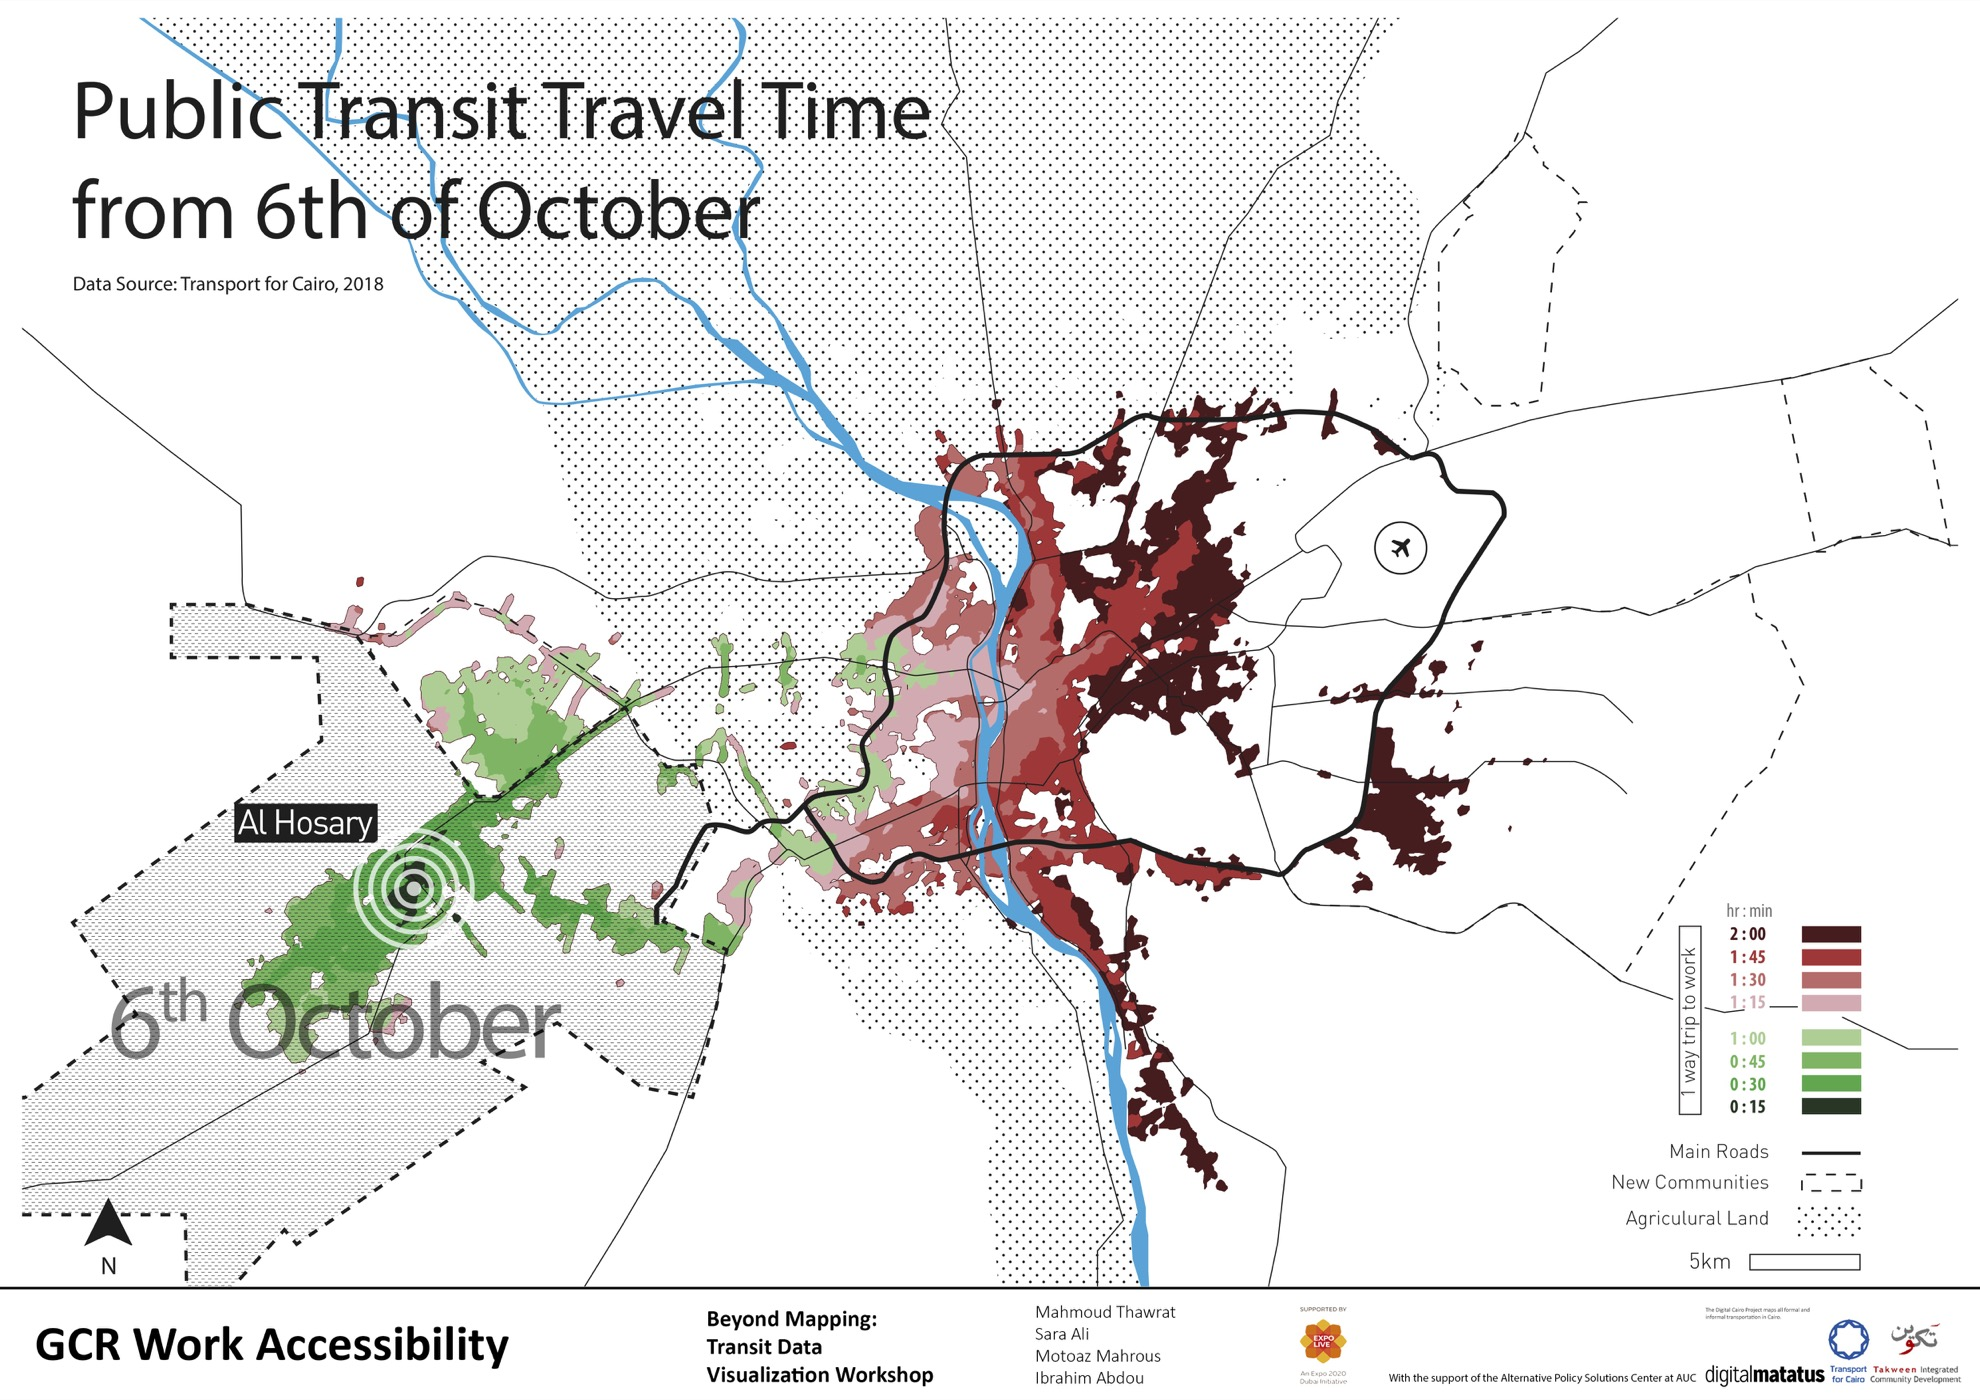 6th of October transit travel time